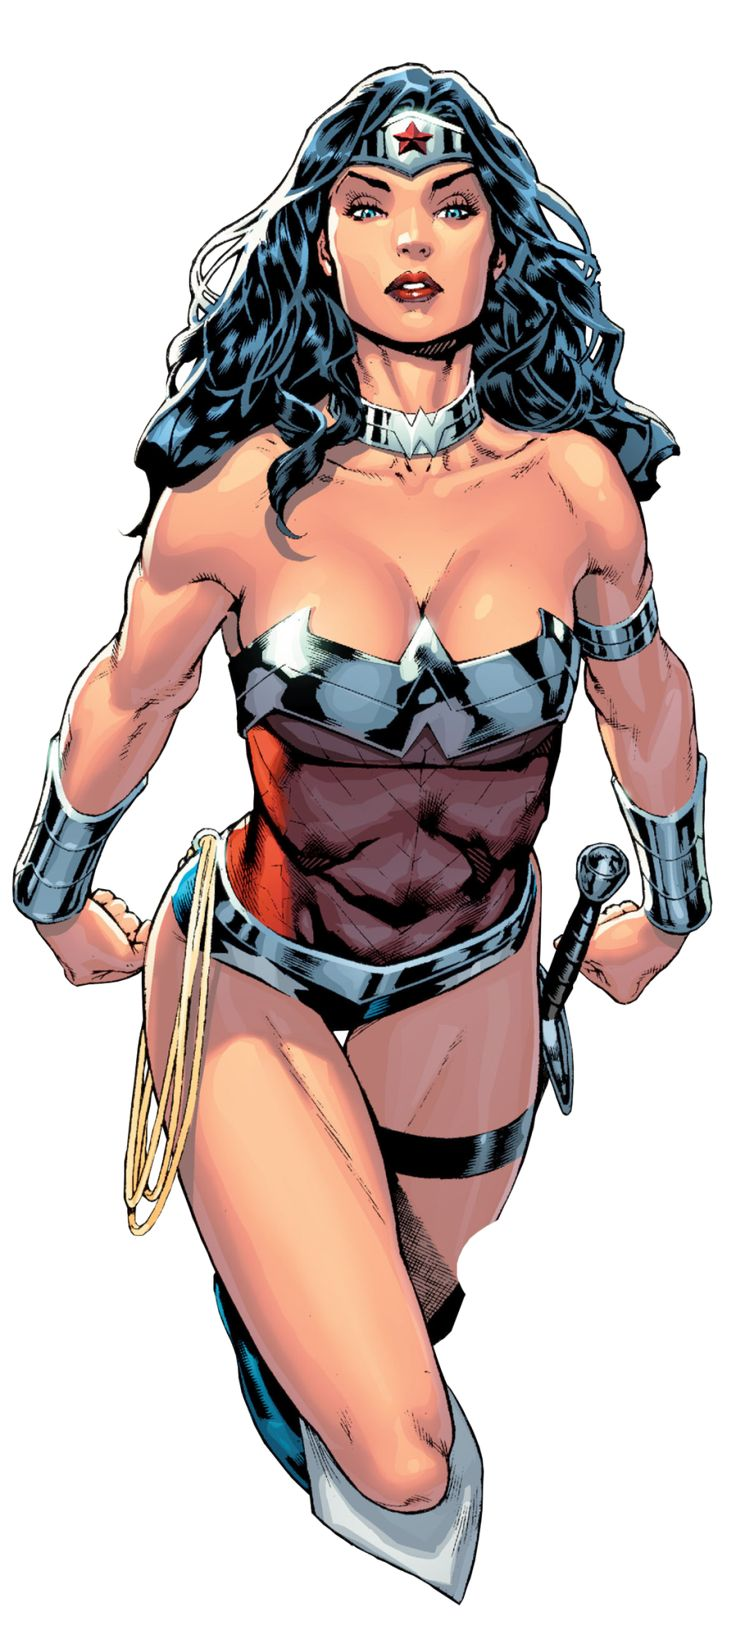 Wonder Woman by Paulo Siqueira